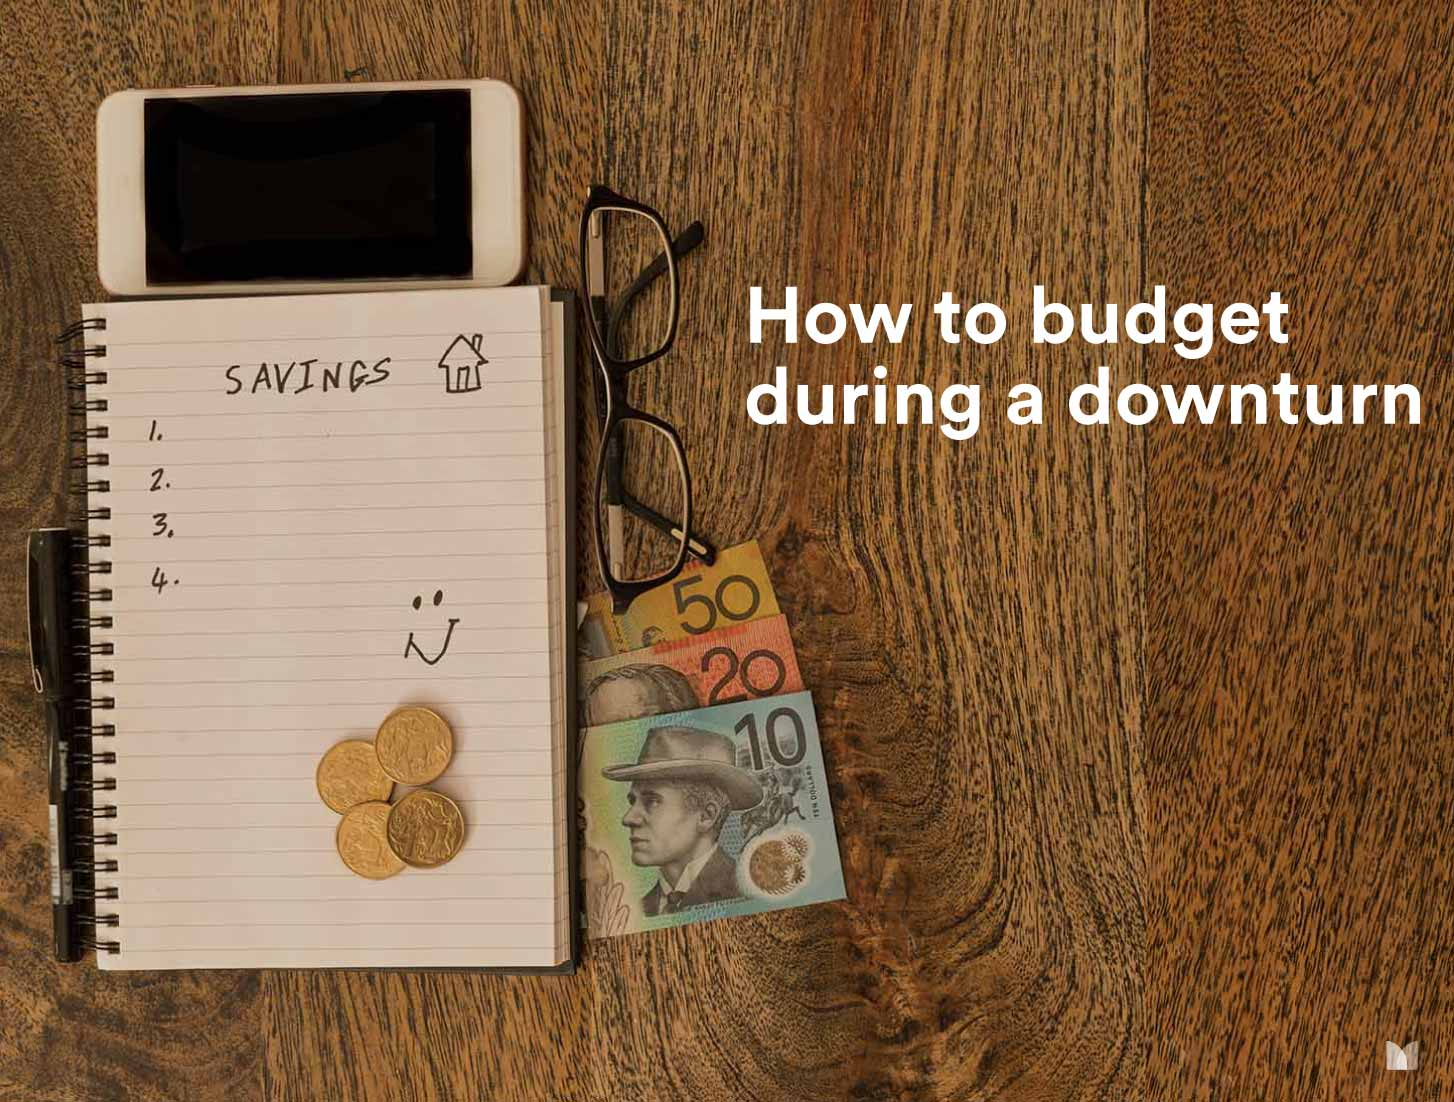 How to budget during a downturn